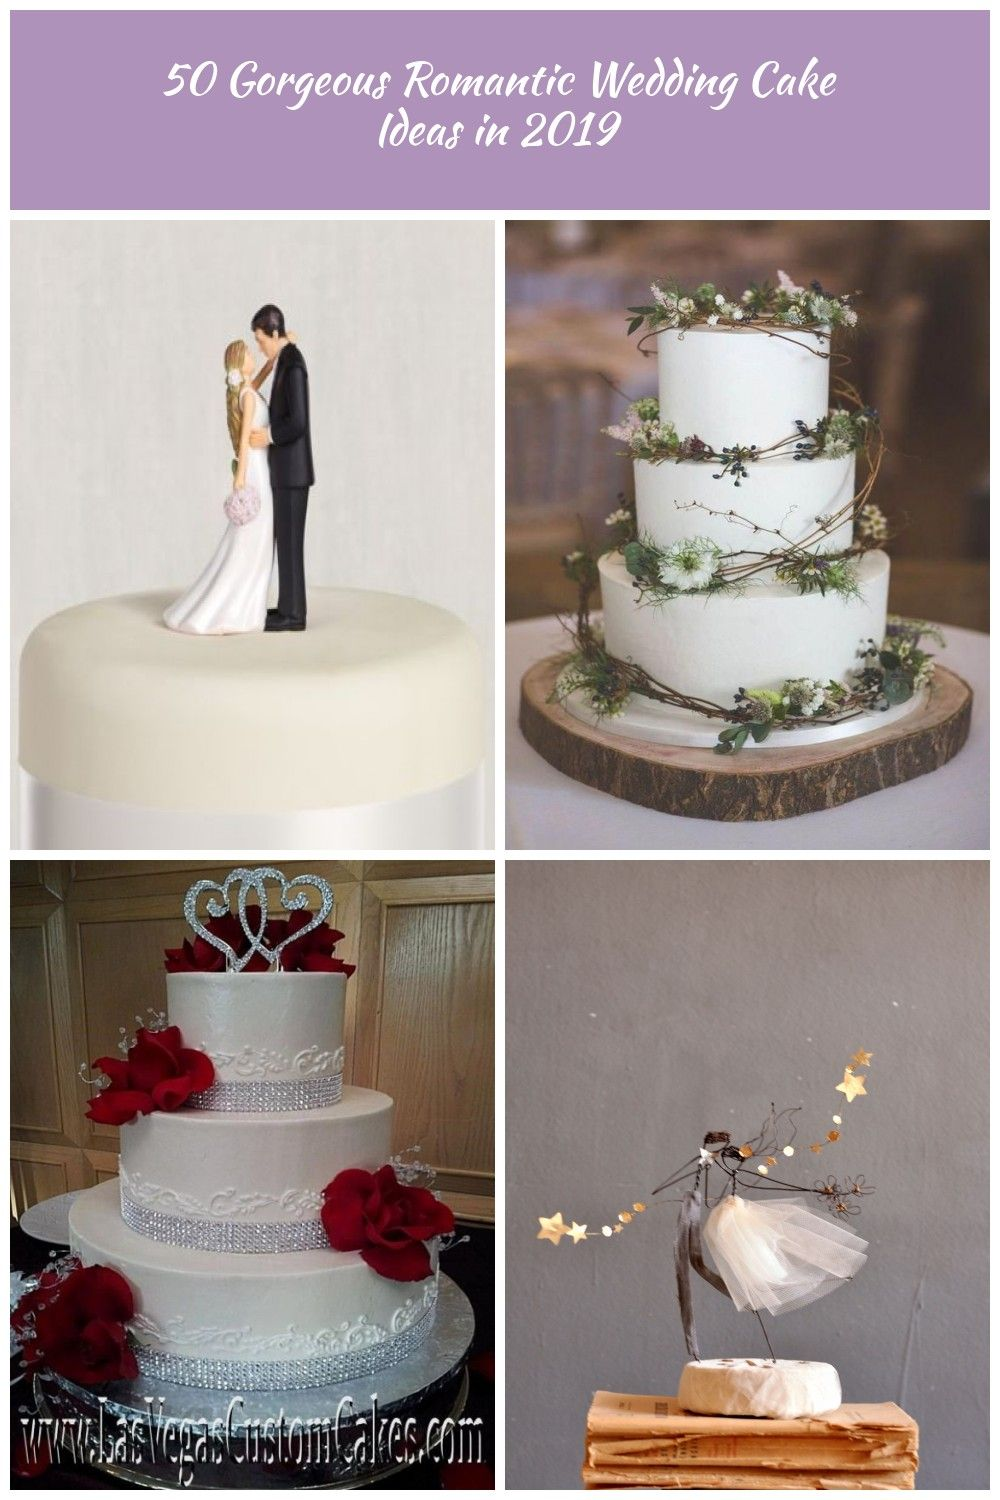 Shop For Blonde Bride Groom Wedding Cake Topper And Other Wedding Cake Toppers Online At Partycity C Romantic Wedding Cake Wedding Cake Toppers Wedding Cakes